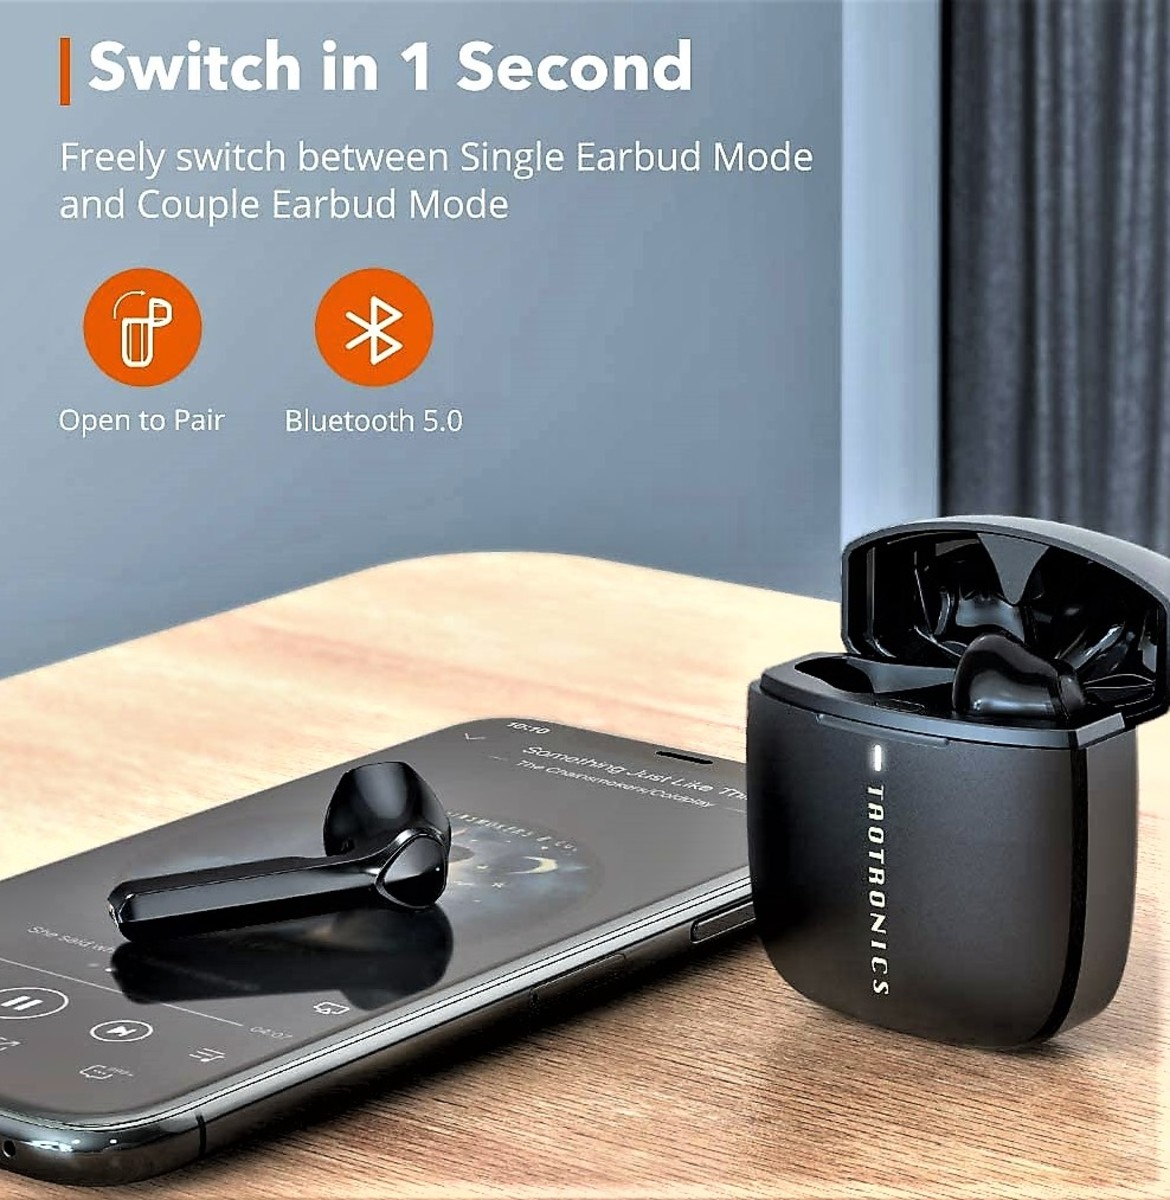 soundliberty-88-92-true-wireless-stereo-earbuds-review